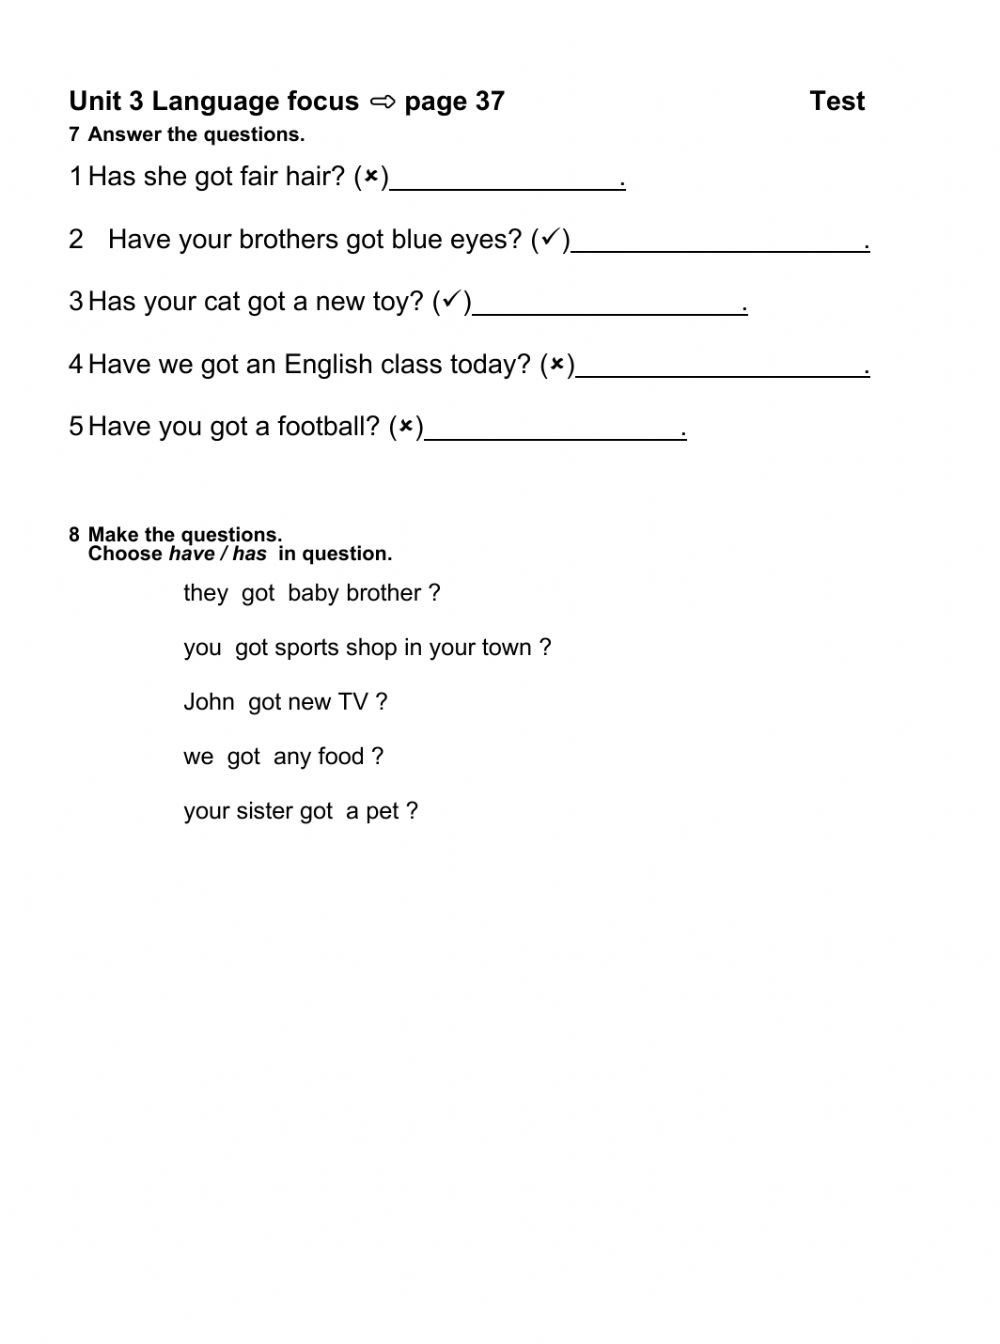 Possessive Pronouns Worksheet 5th Grade Kinds Of Pronouns Worksheets with Answers Possessive